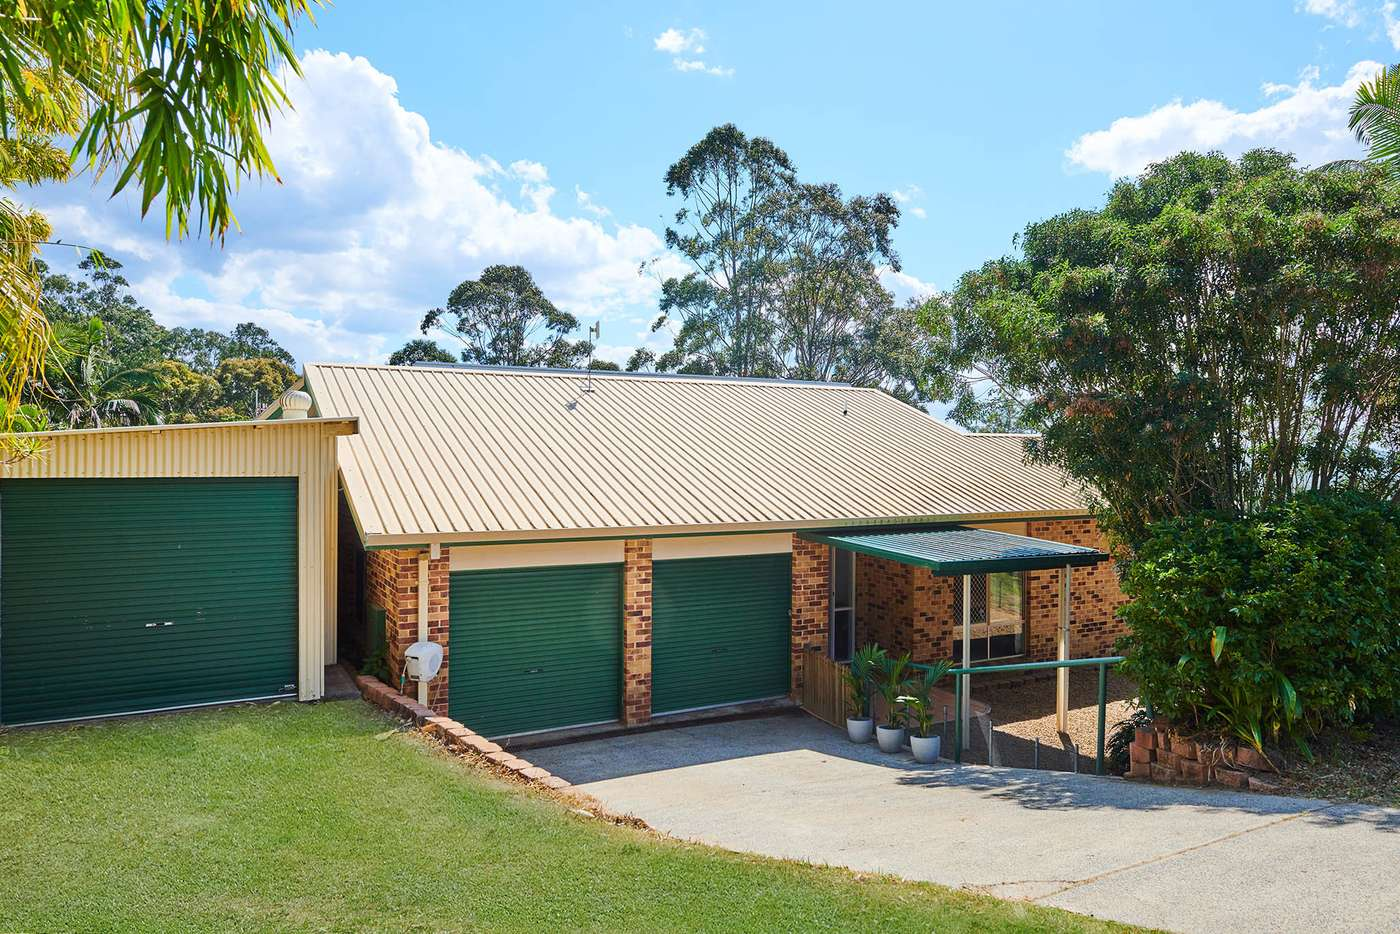 Fifth view of Homely house listing, 29 Warrambool Rd, Ocean Shores NSW 2483